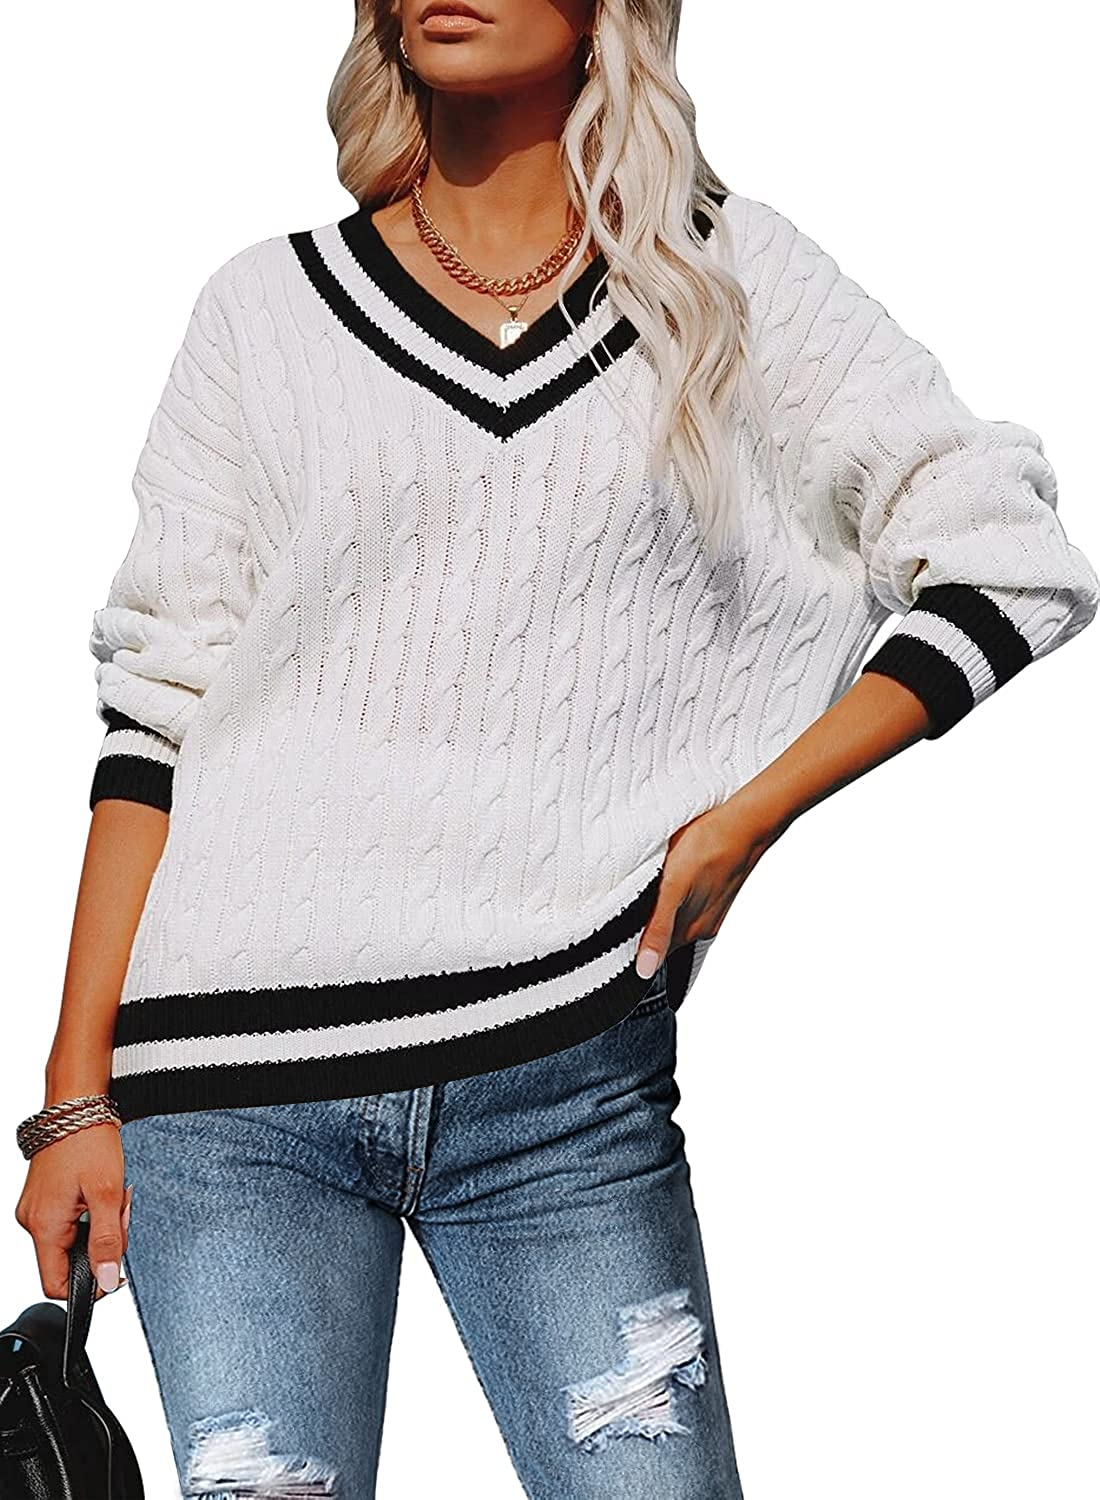 MIHOLL Women's V Neck Sweater Long Sleeve OversizedCable Knit Pullover Jumper Tops